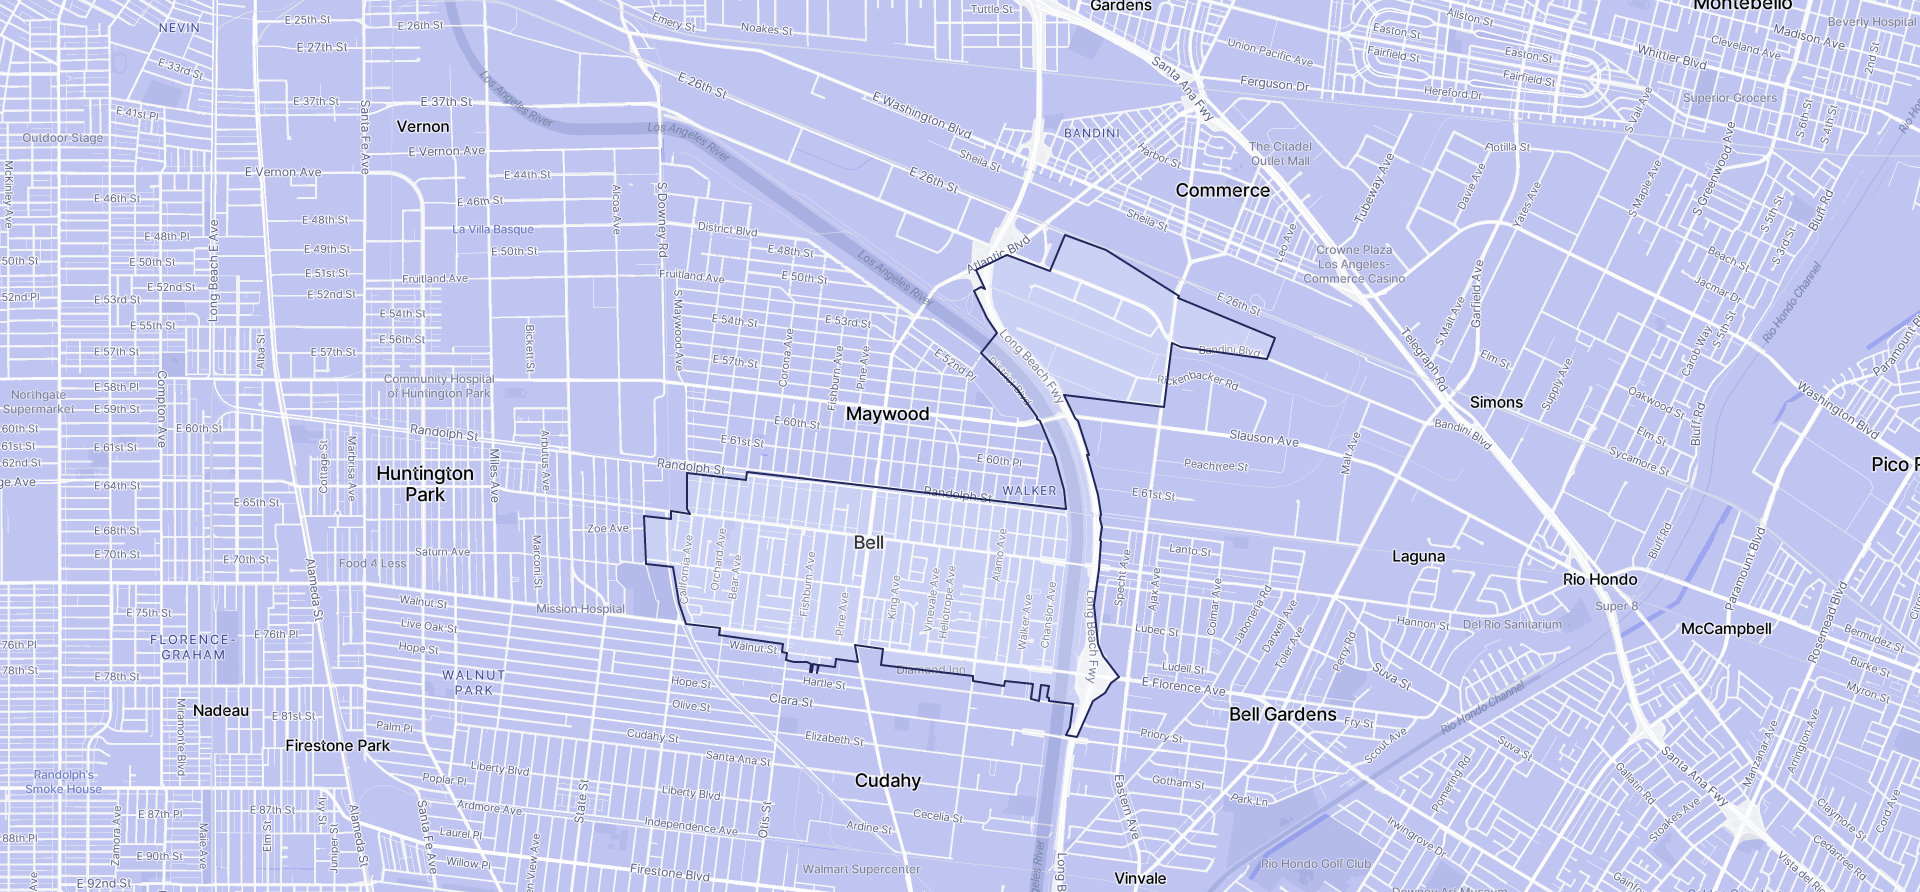 Image of Bell boundaries on a map.